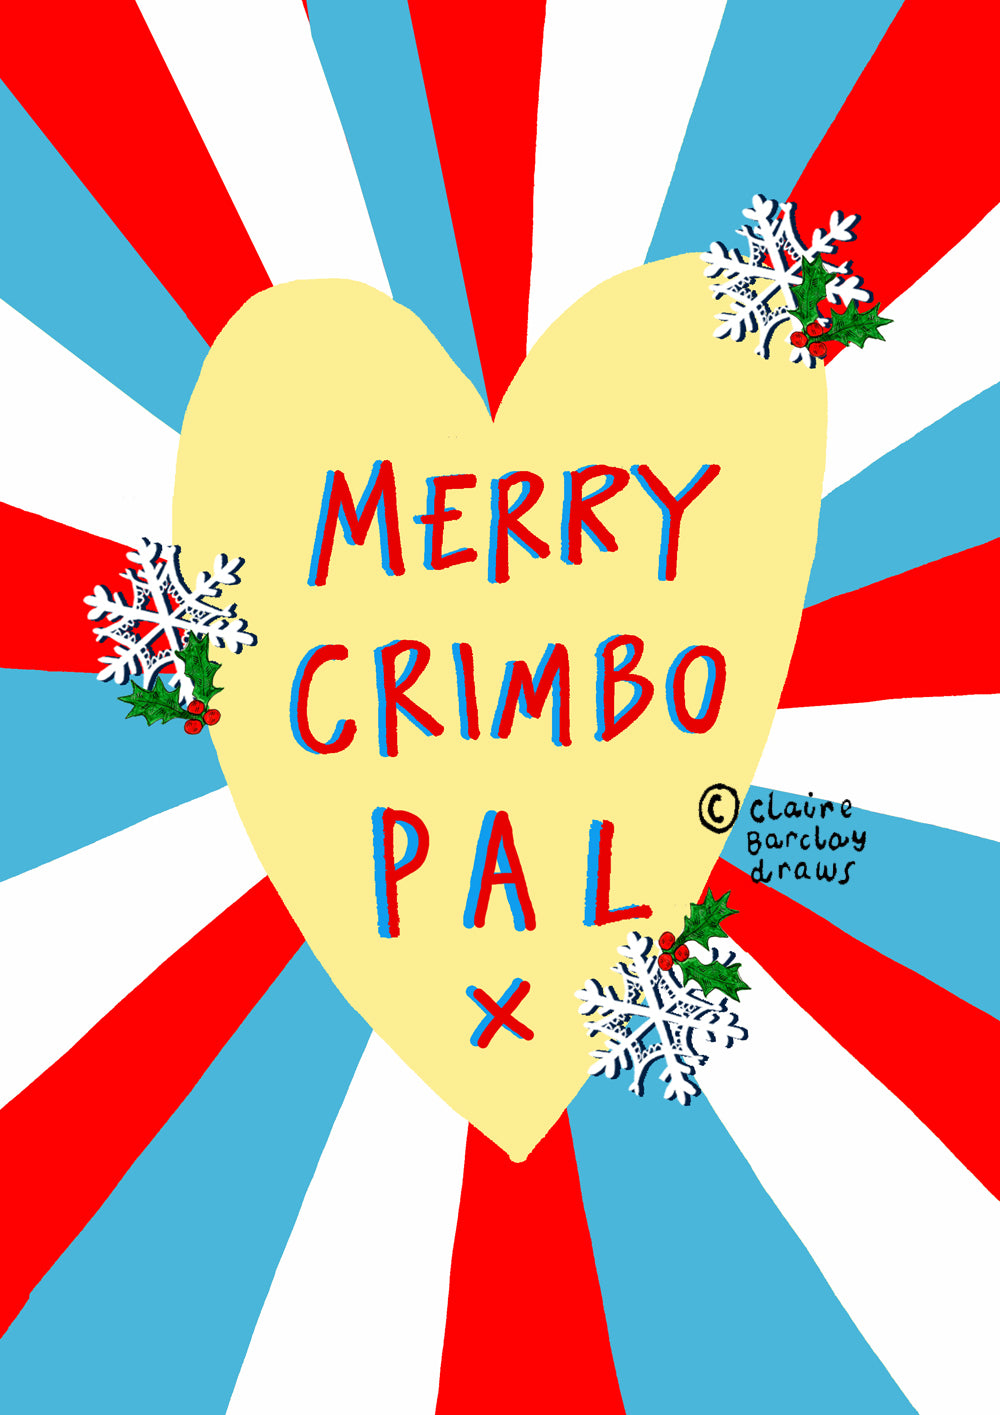 Merry Crimbo Pal! Christmas Card